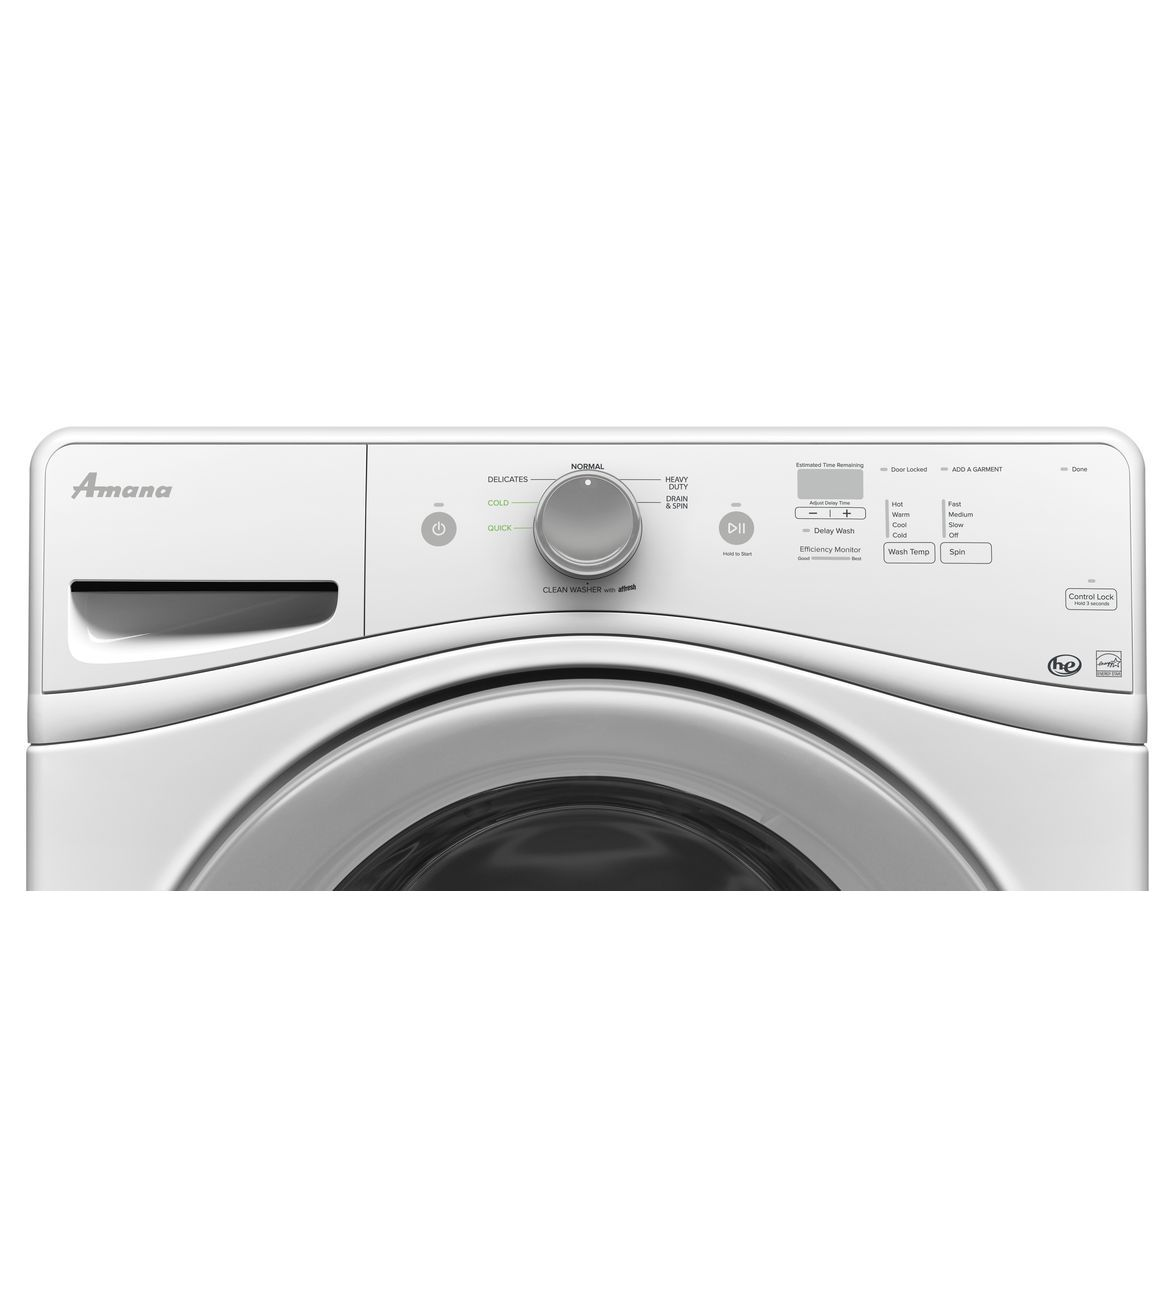 Nfw5800dw Amana 48 Cu Ft Iec Energy Star Qualified Front Wiring Diagram Also Washing Machine Motor Nfw5800dwgallery Image